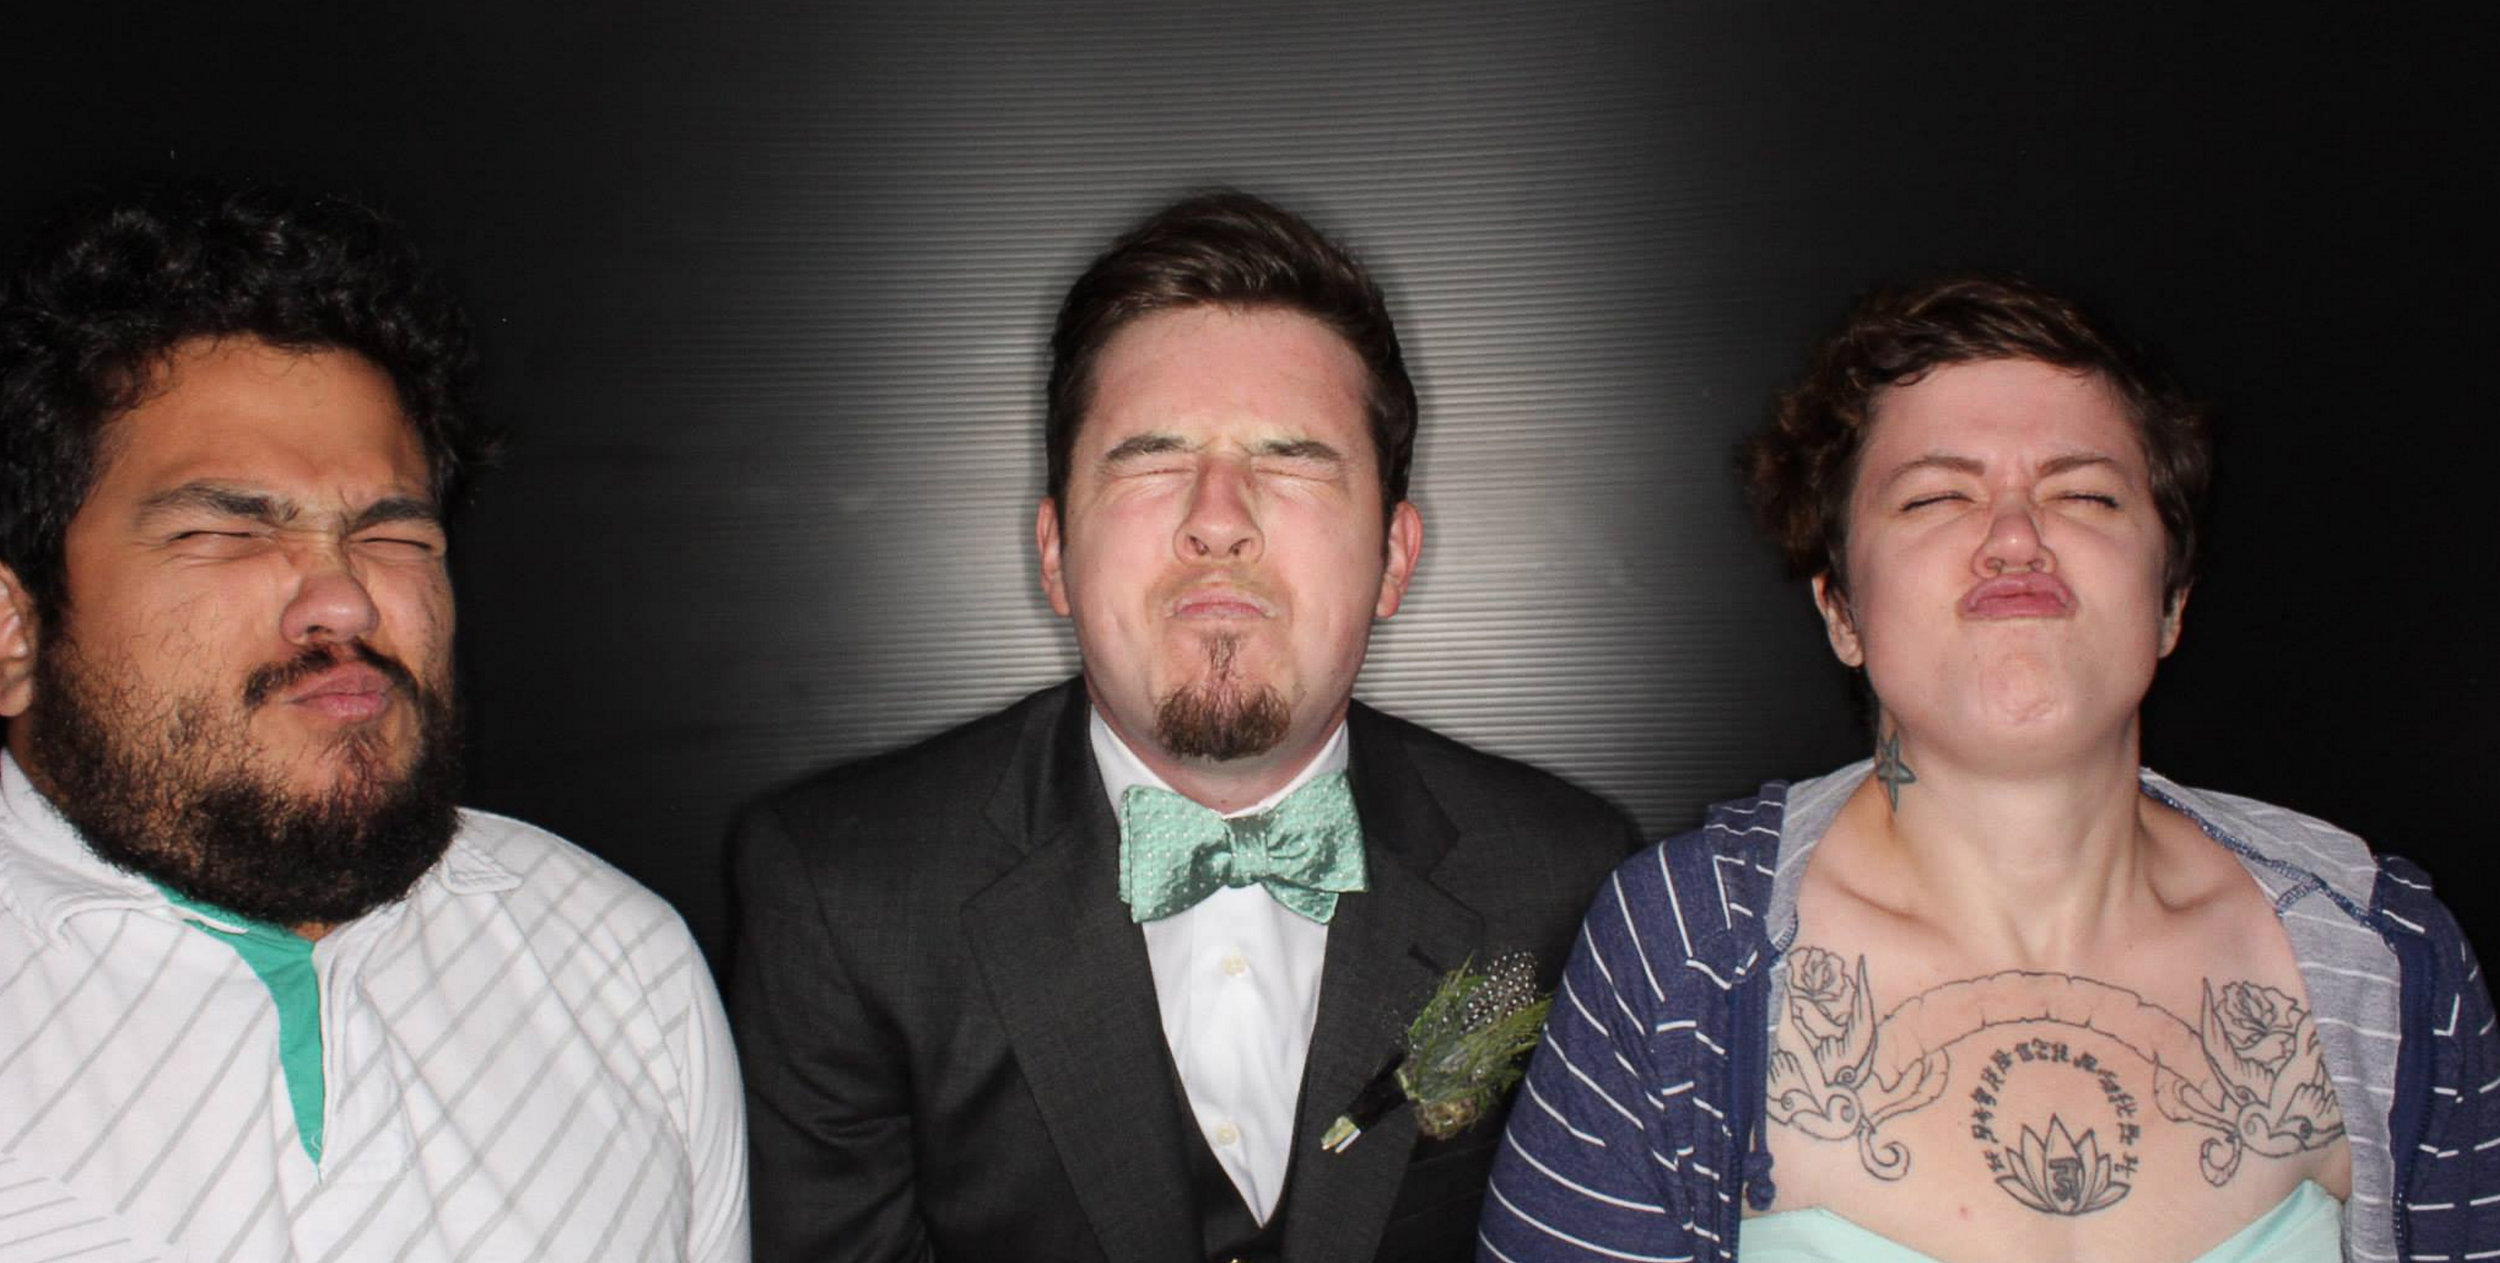 Oscar and Veronica and I looking so fresh at my wedding.